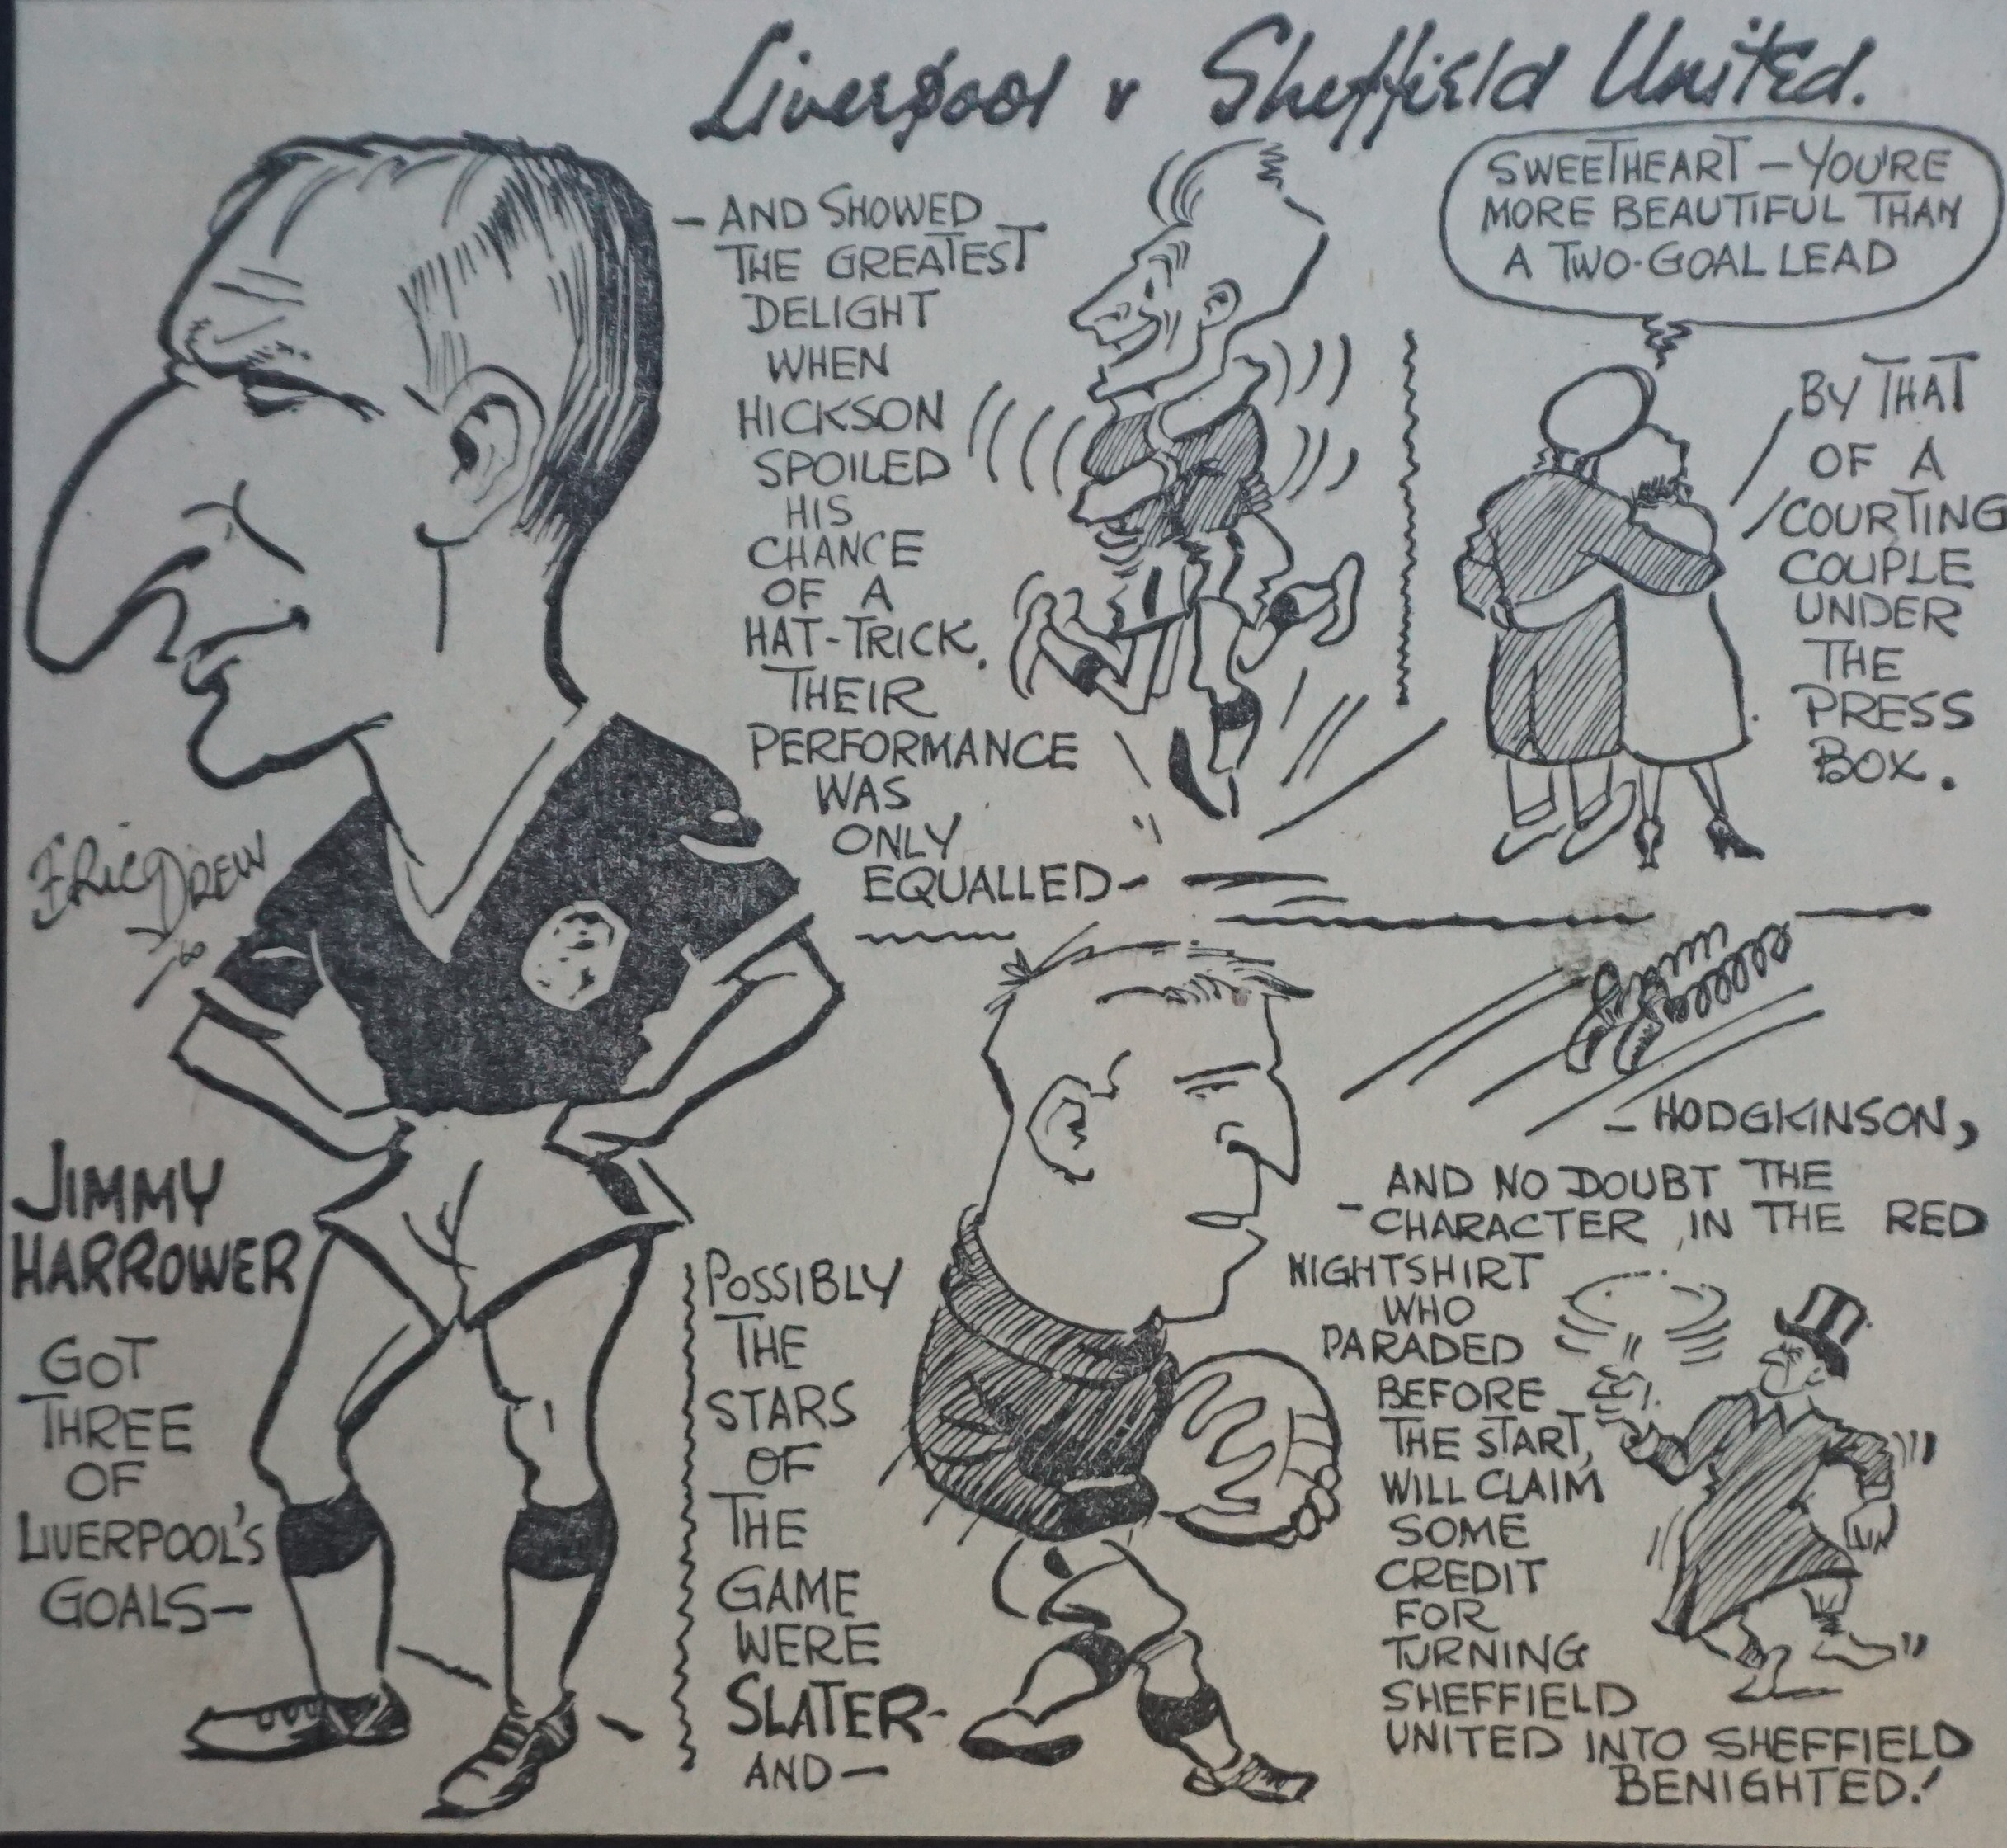 Harrower's hat-trick - 26 November 1960